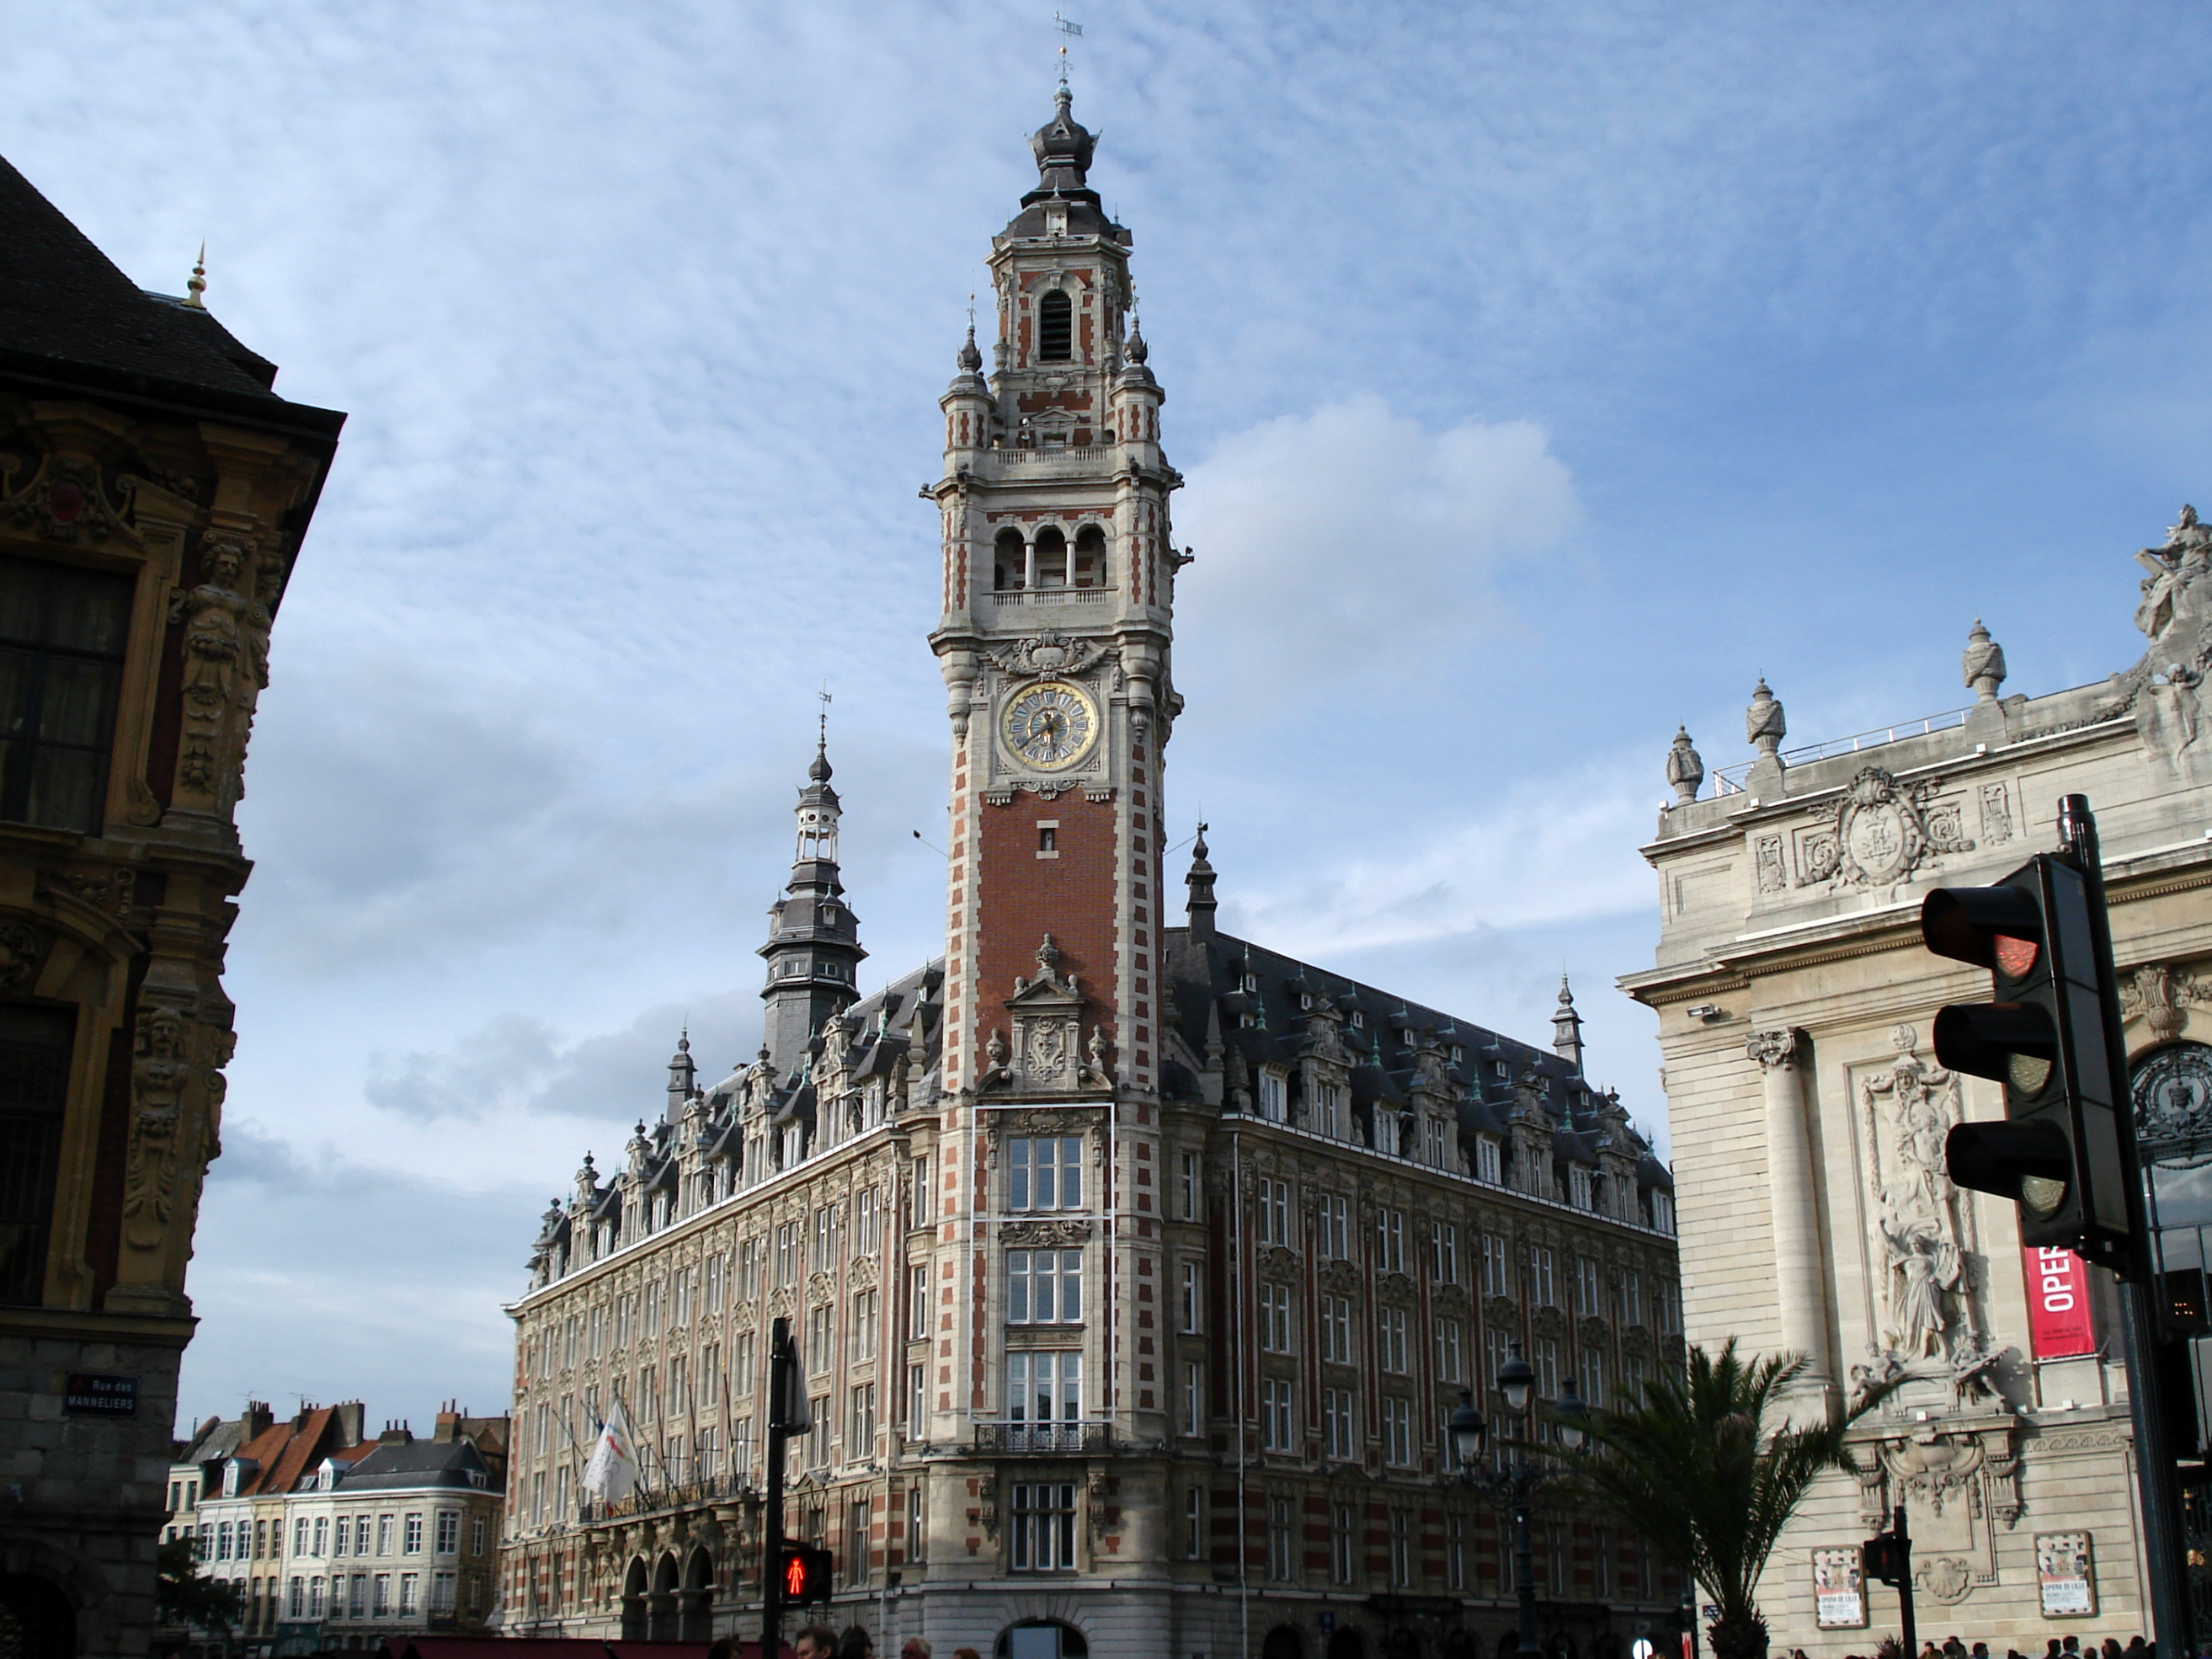 lille chamber of commerce public building in lille thousand wonders. Black Bedroom Furniture Sets. Home Design Ideas